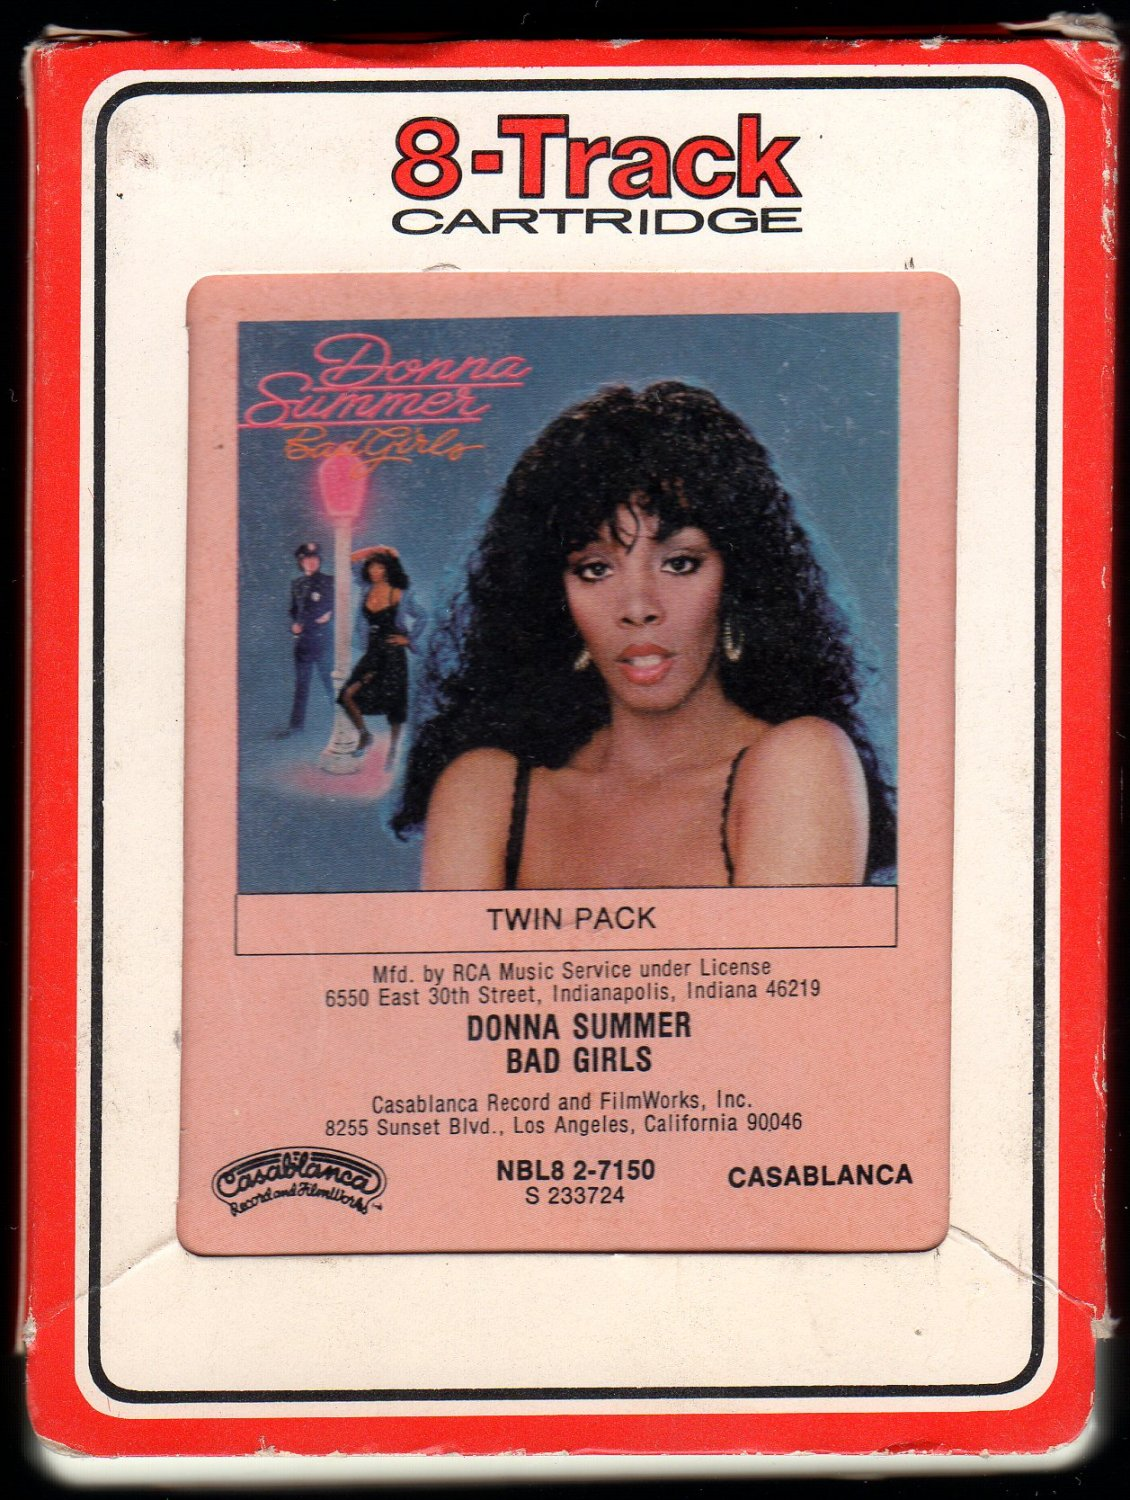 Donna Summer - Bad Girls 1979 RCA CASABLANCA A22 8-TRACK TAPE